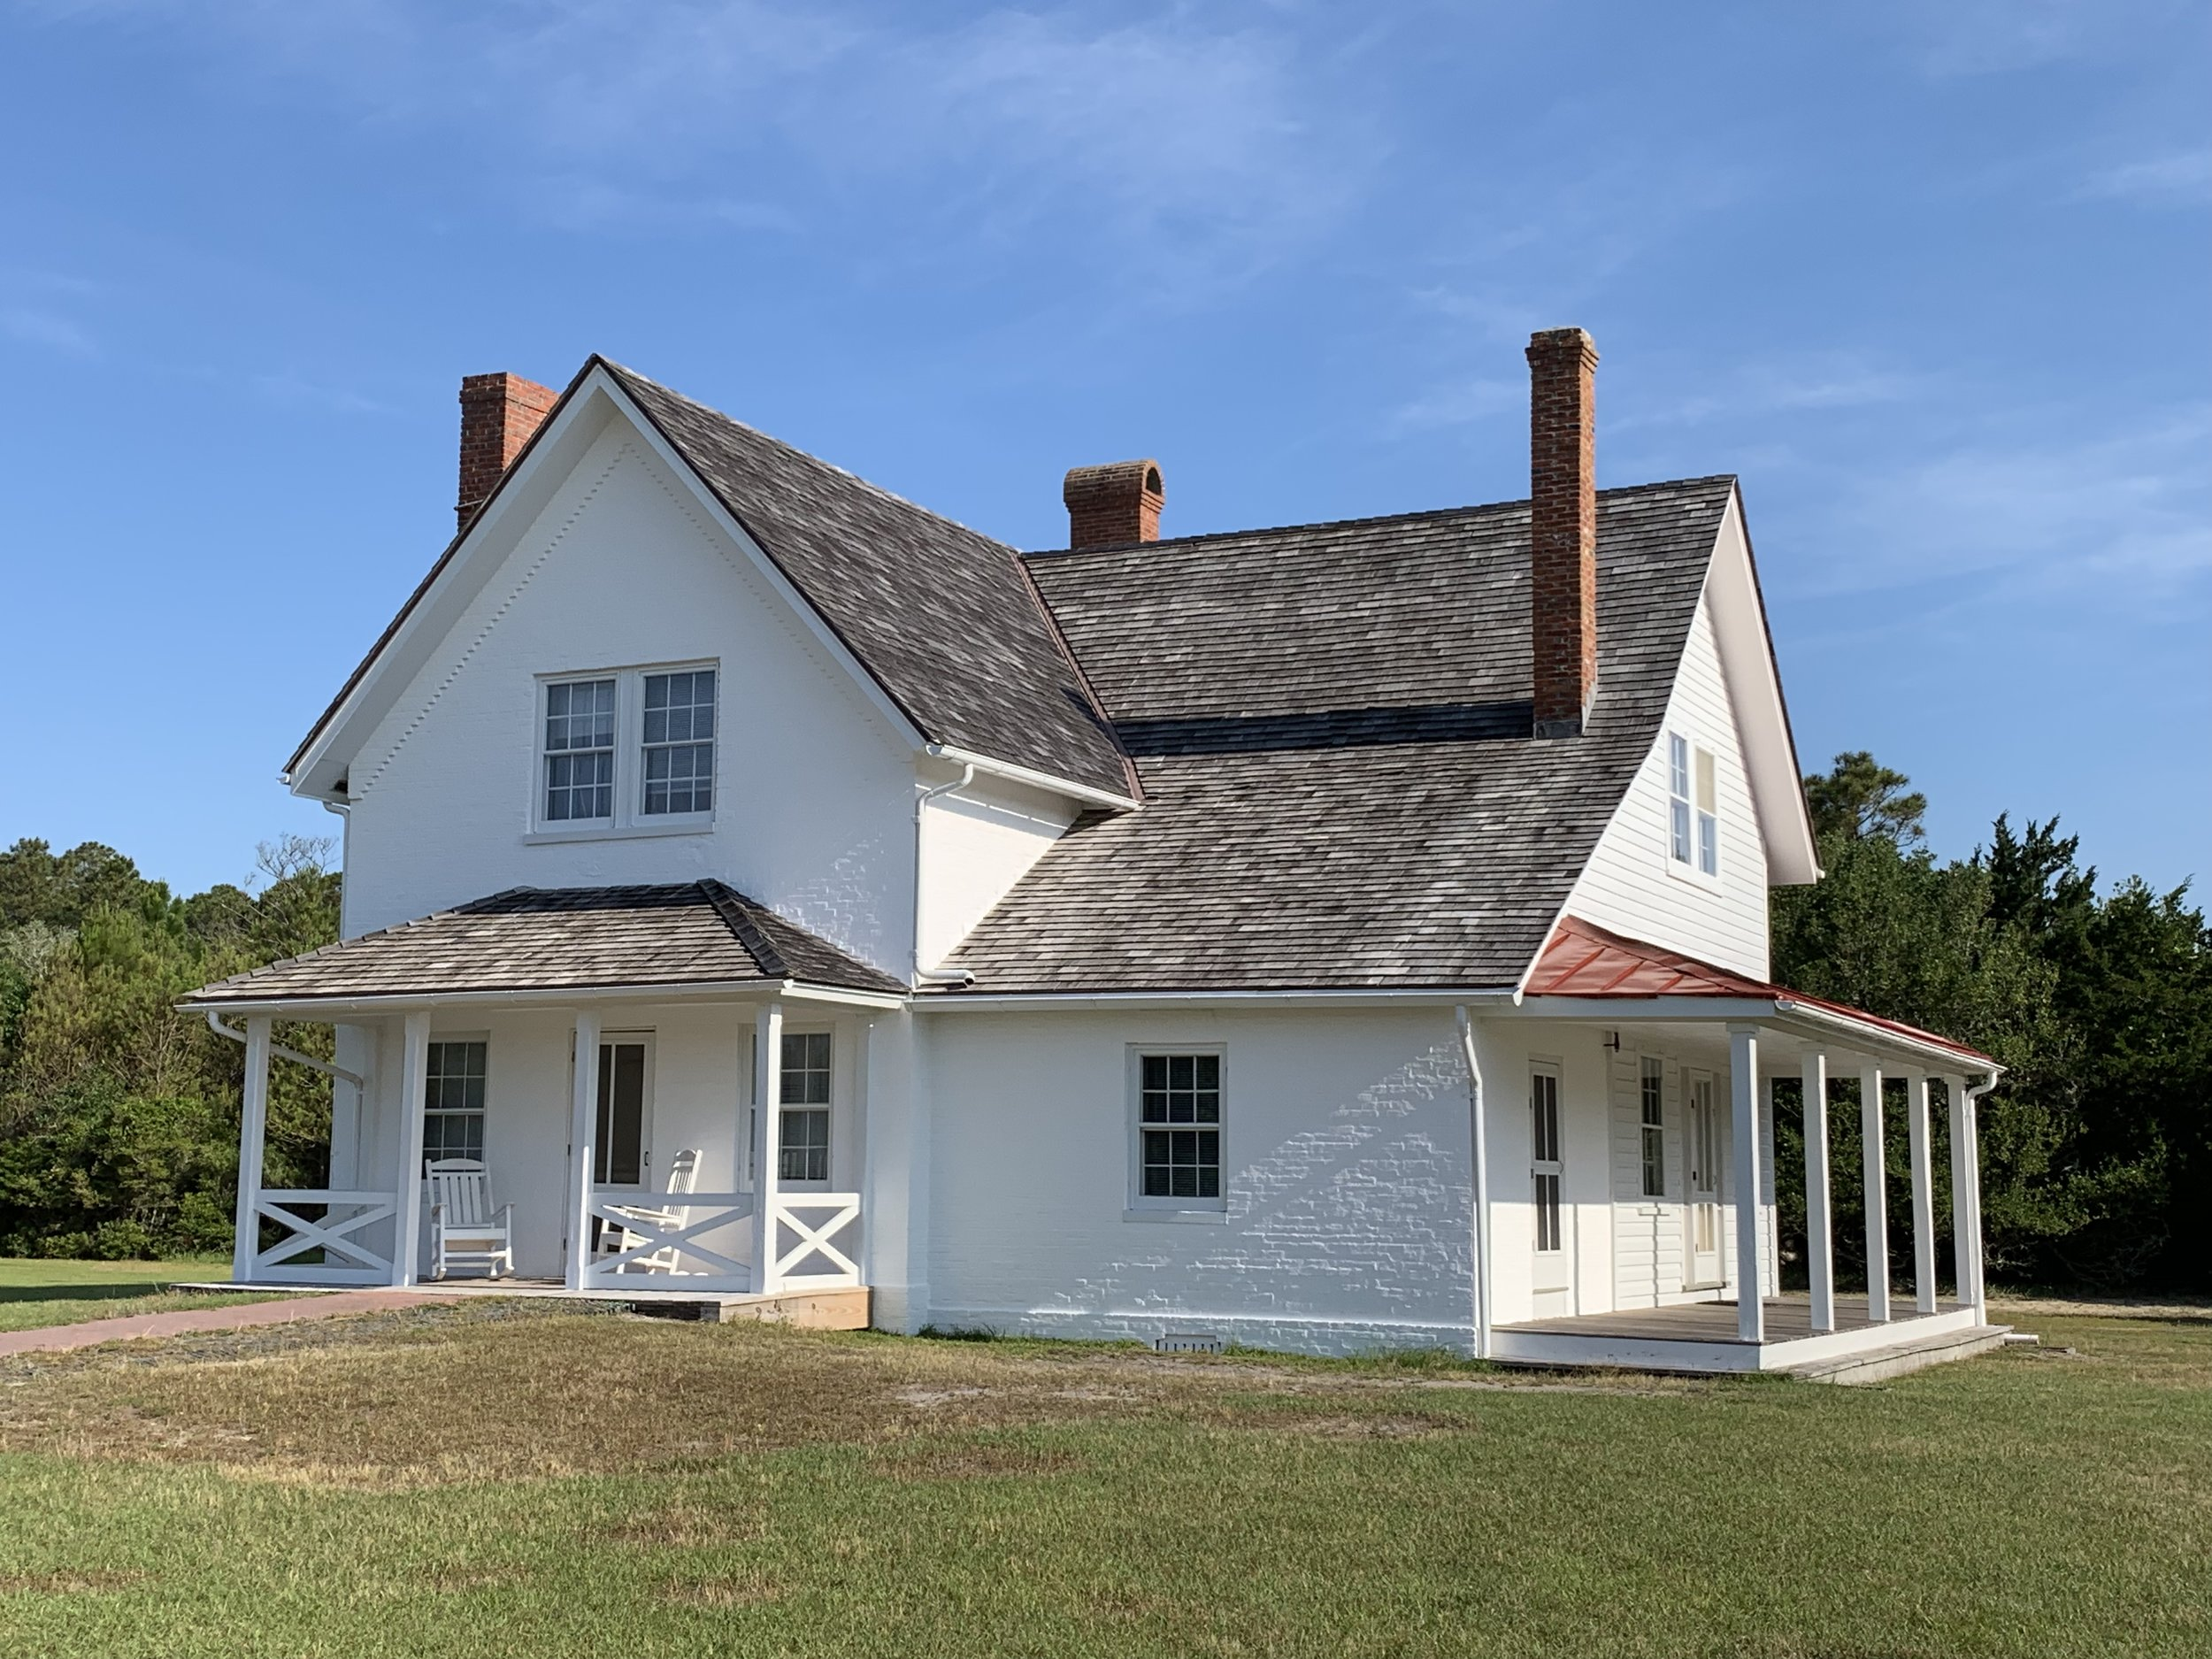 Cape Hatteras Lighthouse Principal Keeper's Quarters - BEECK Mineral Paints .jpg